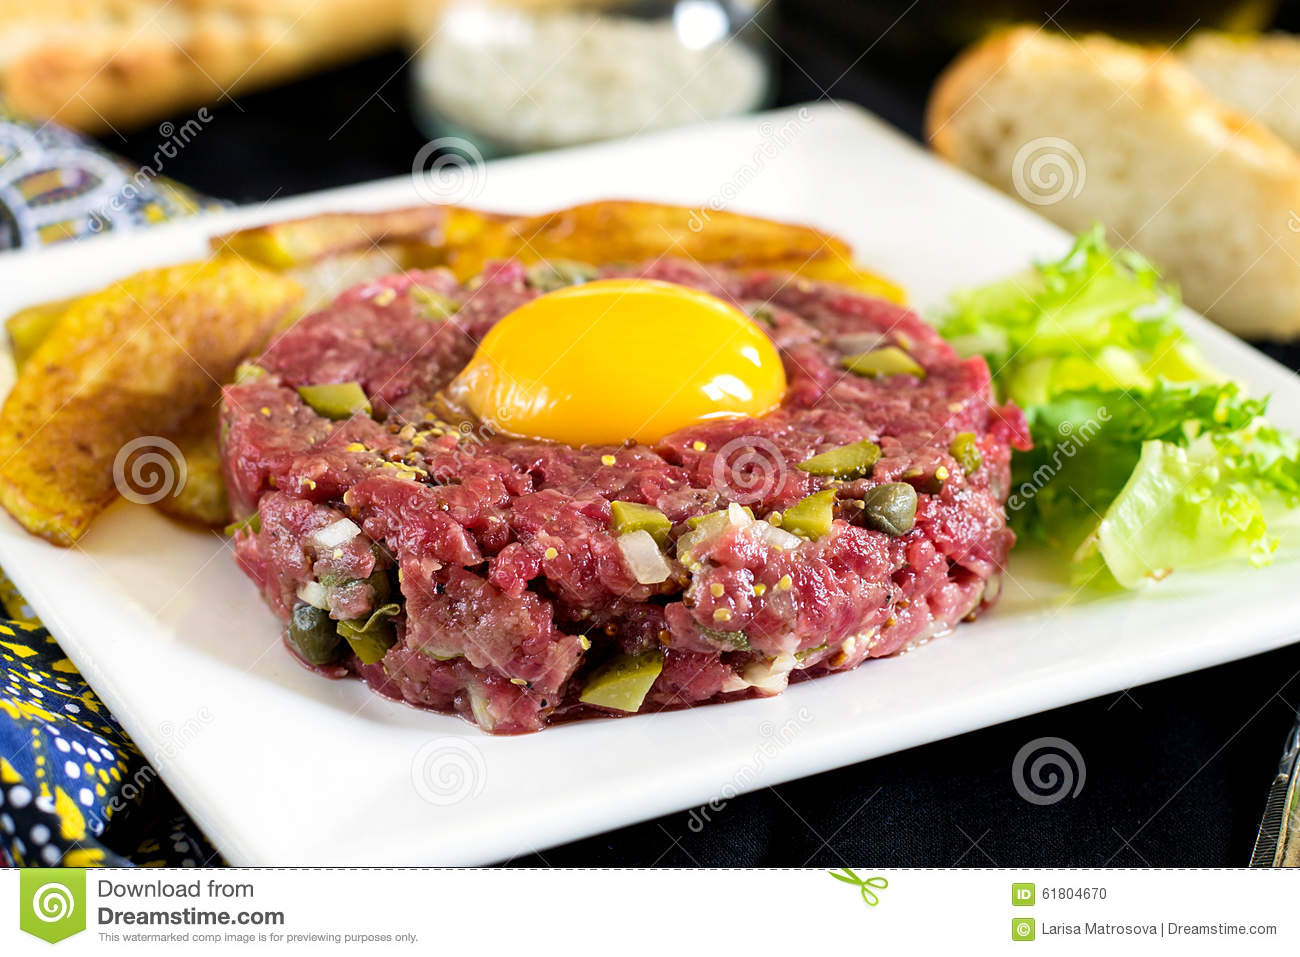 How To Make Steak Tartare At Home